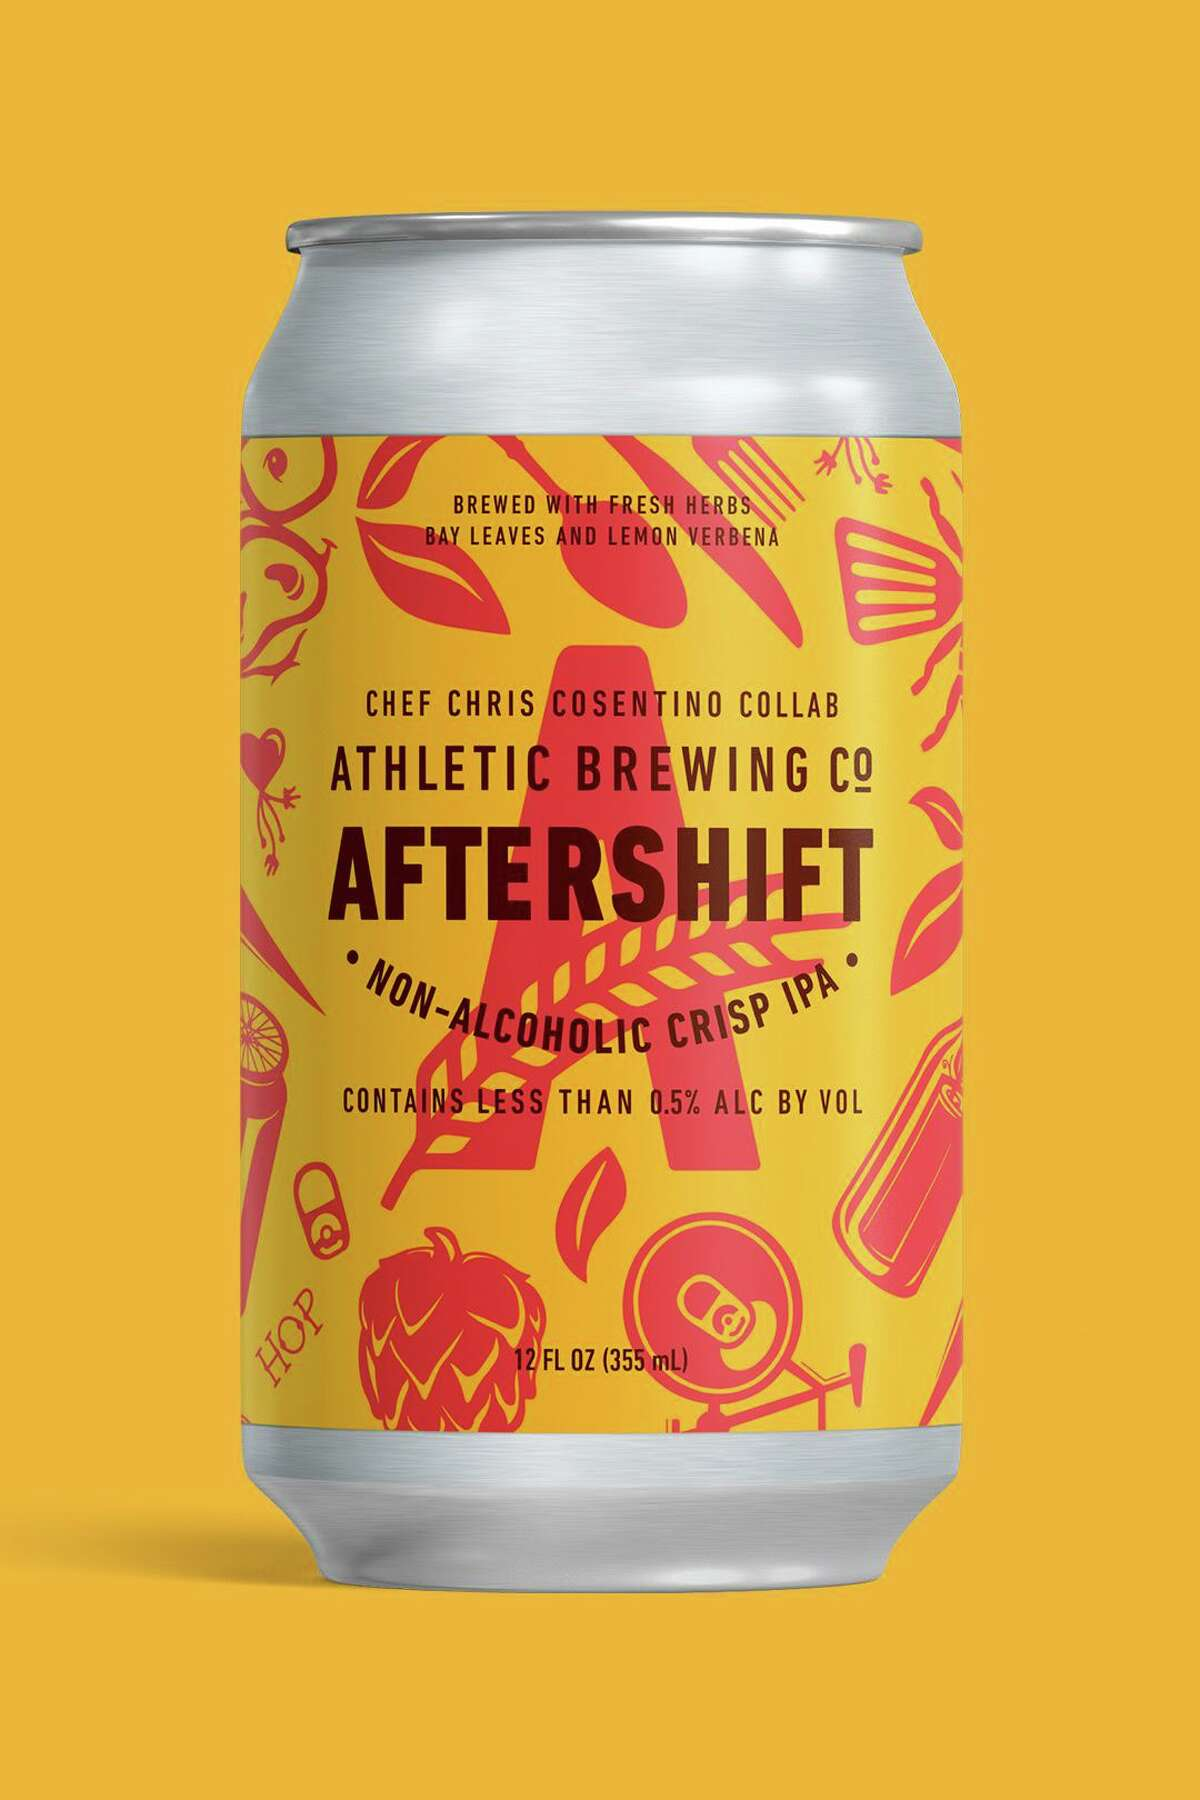 Chef Chris Cosentino collaborated with Athletic Brewing Company to launch their new nonalcoholic IPA, AfterShift. The non-alcoholic beer industry has grown in recent years, with the